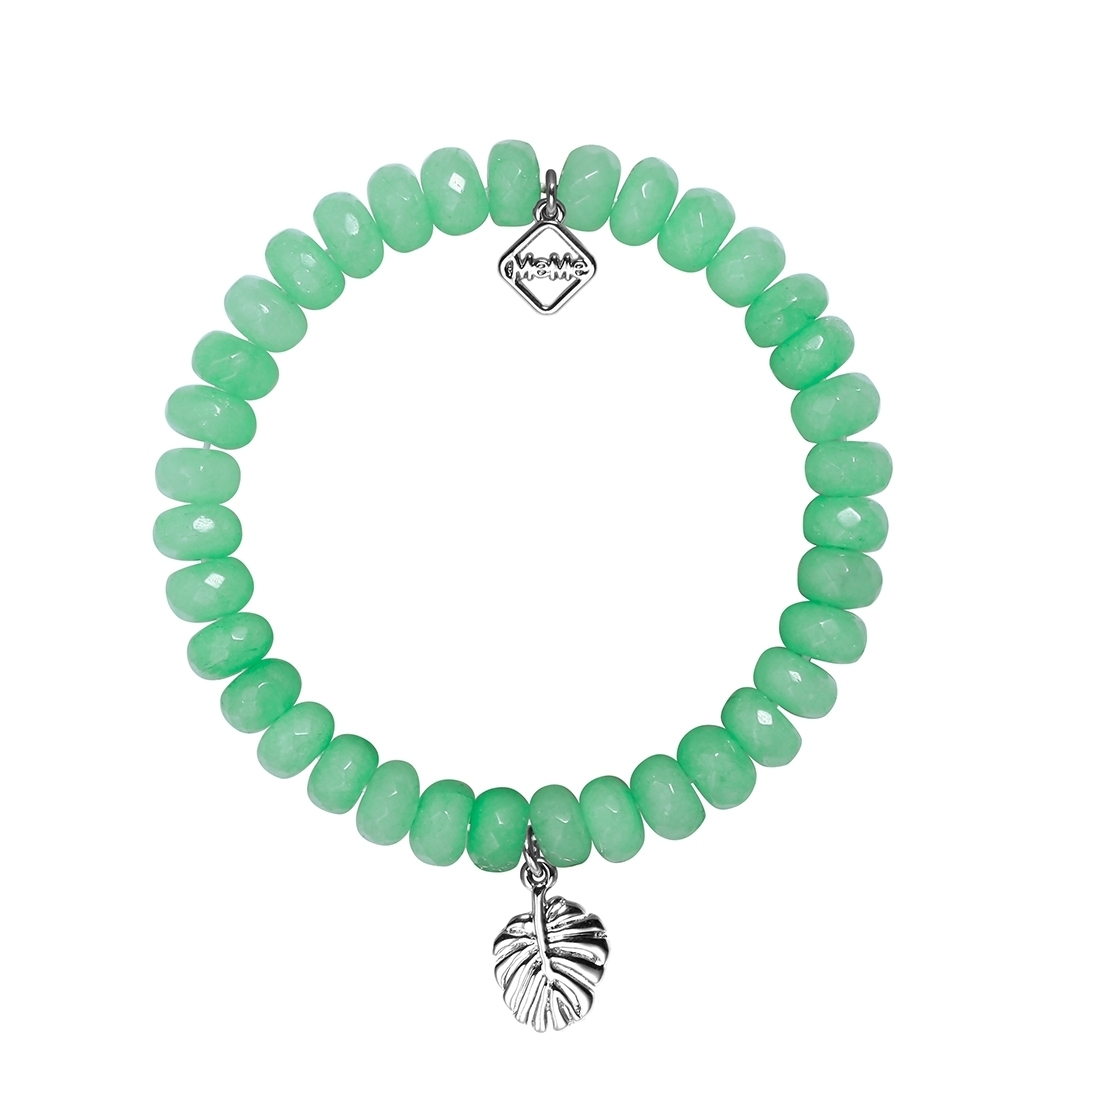 MEME LONDON Beverly Hills - Banana Leaf Green With White Gold